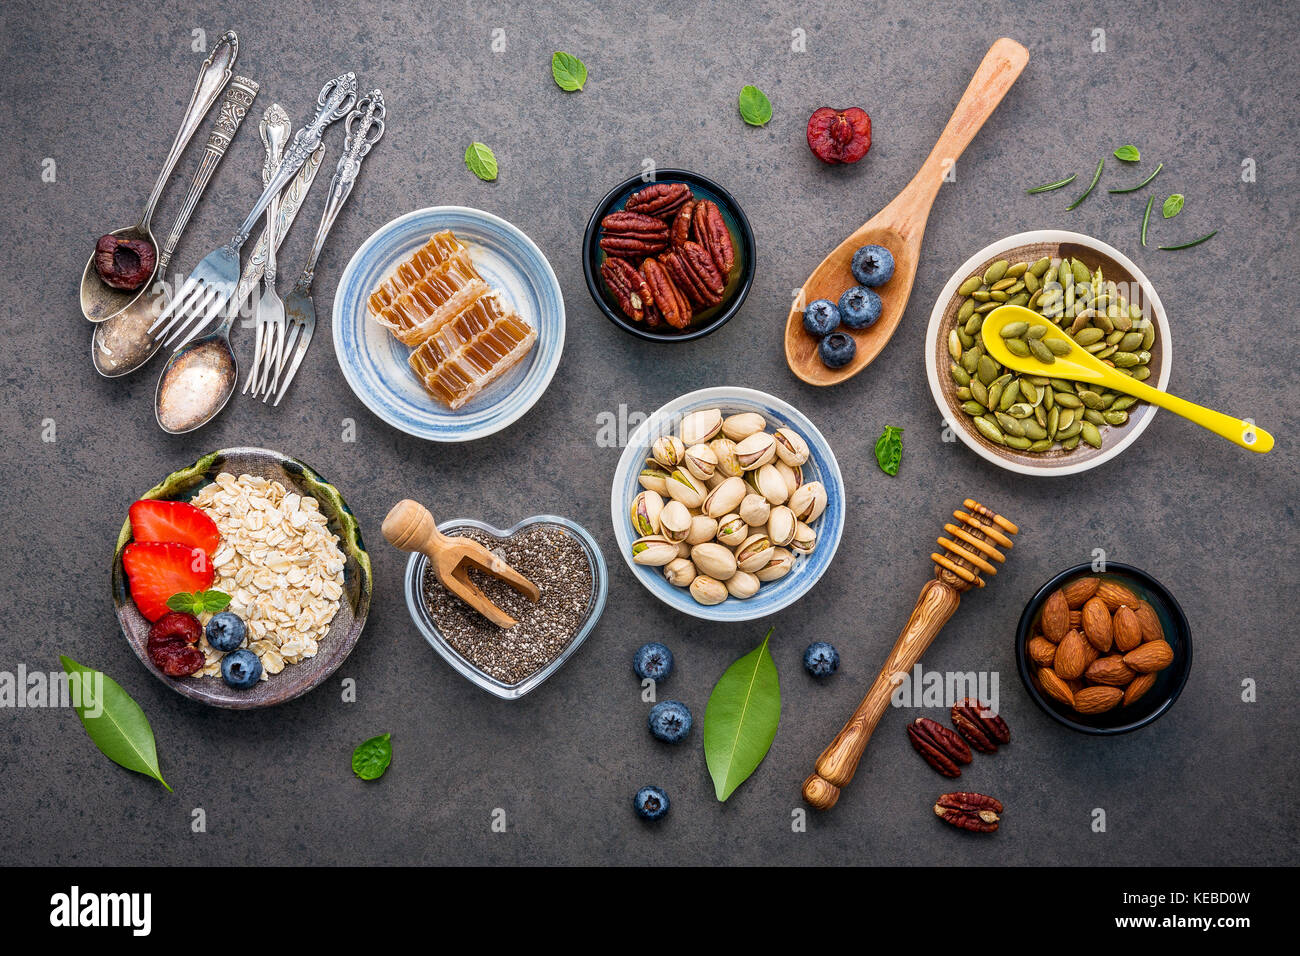 Ingredients for the healthy foods background Mixed nuts, honey, berries, fruits, blueberry, orange, almonds, oatmeal Stock Photo